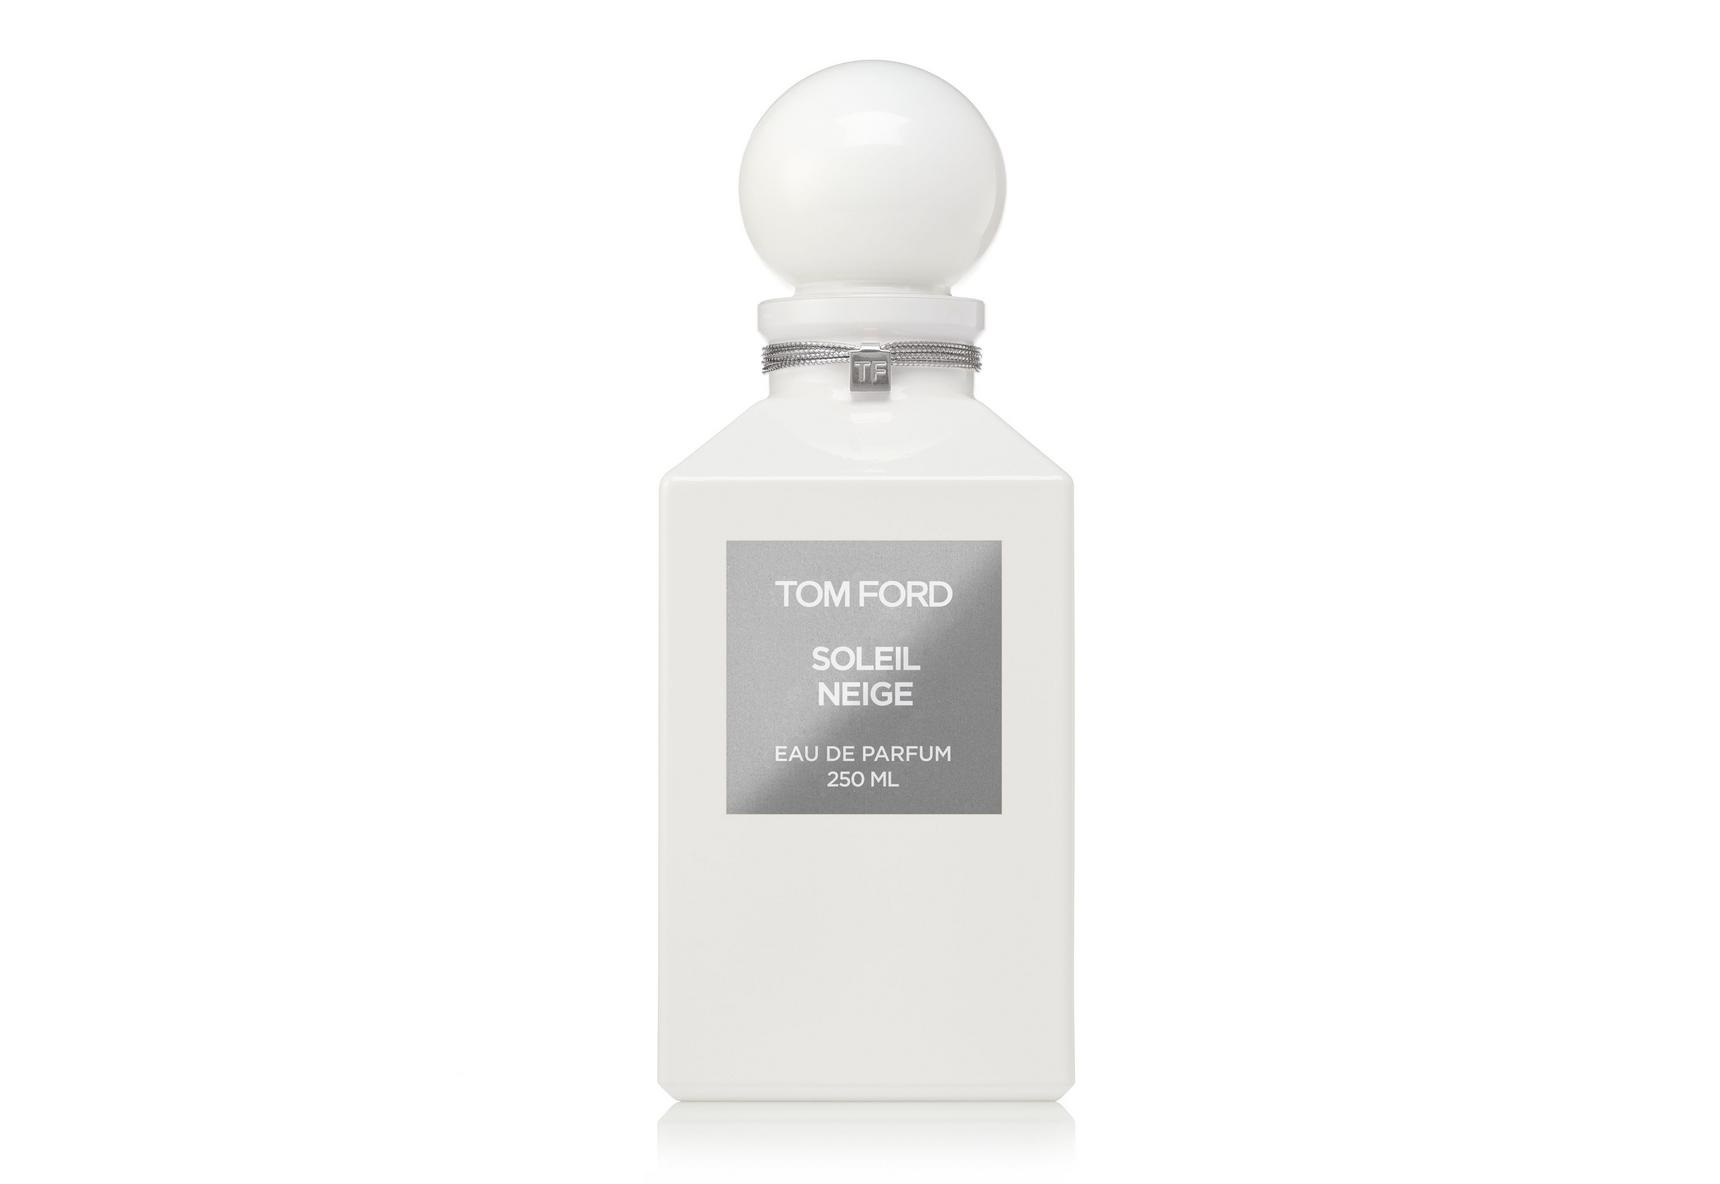 Tom Ford Soleil Neige 250 mL